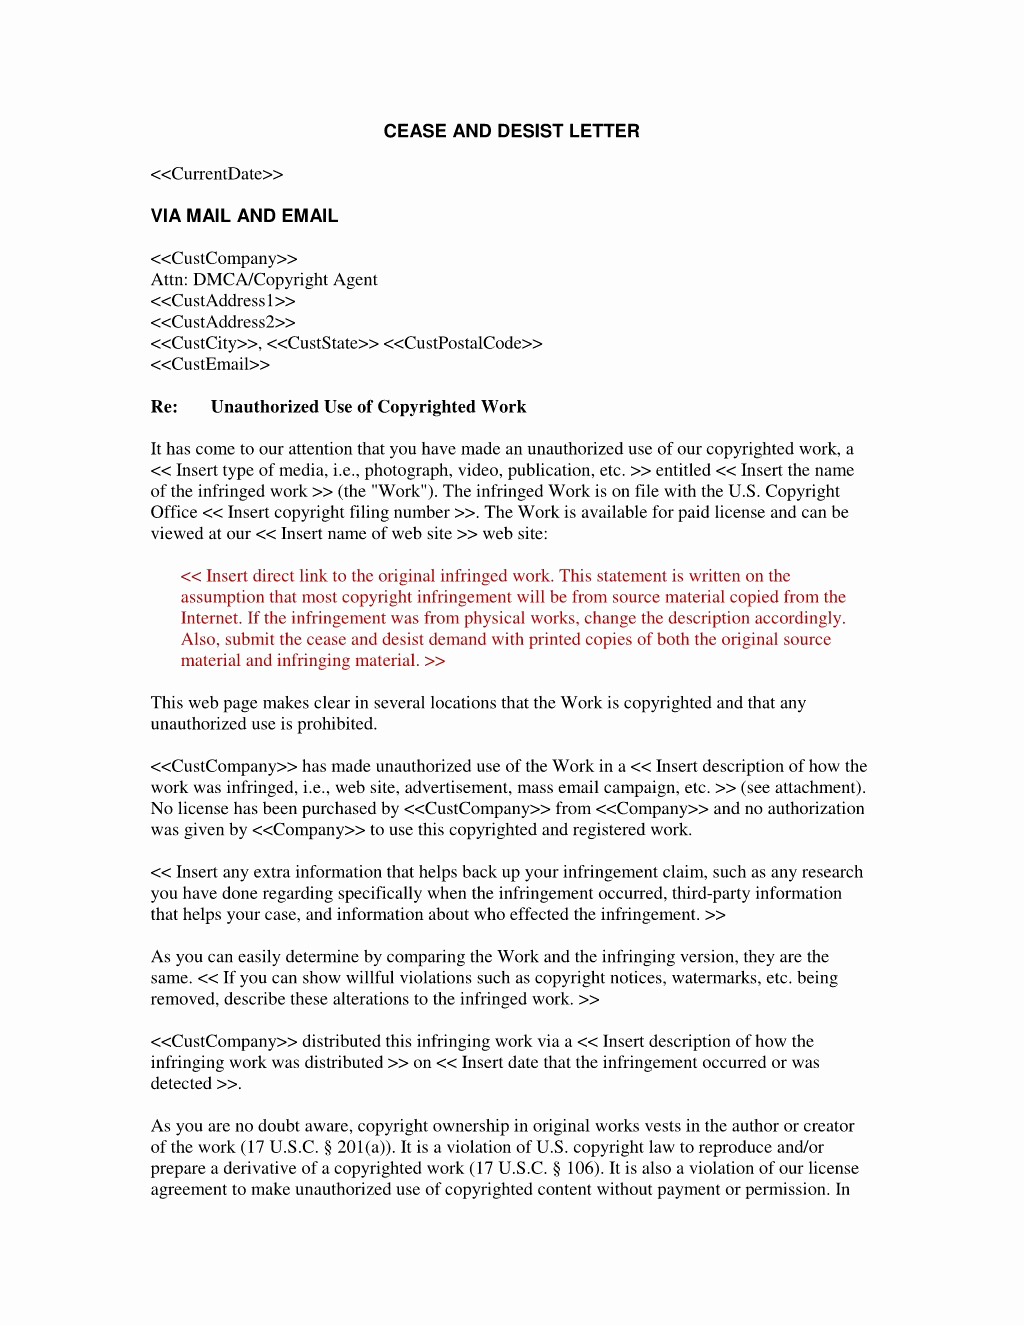 Cease and Desist Letters Sample Fresh Cease and Desist Letter Patent Infringement Template